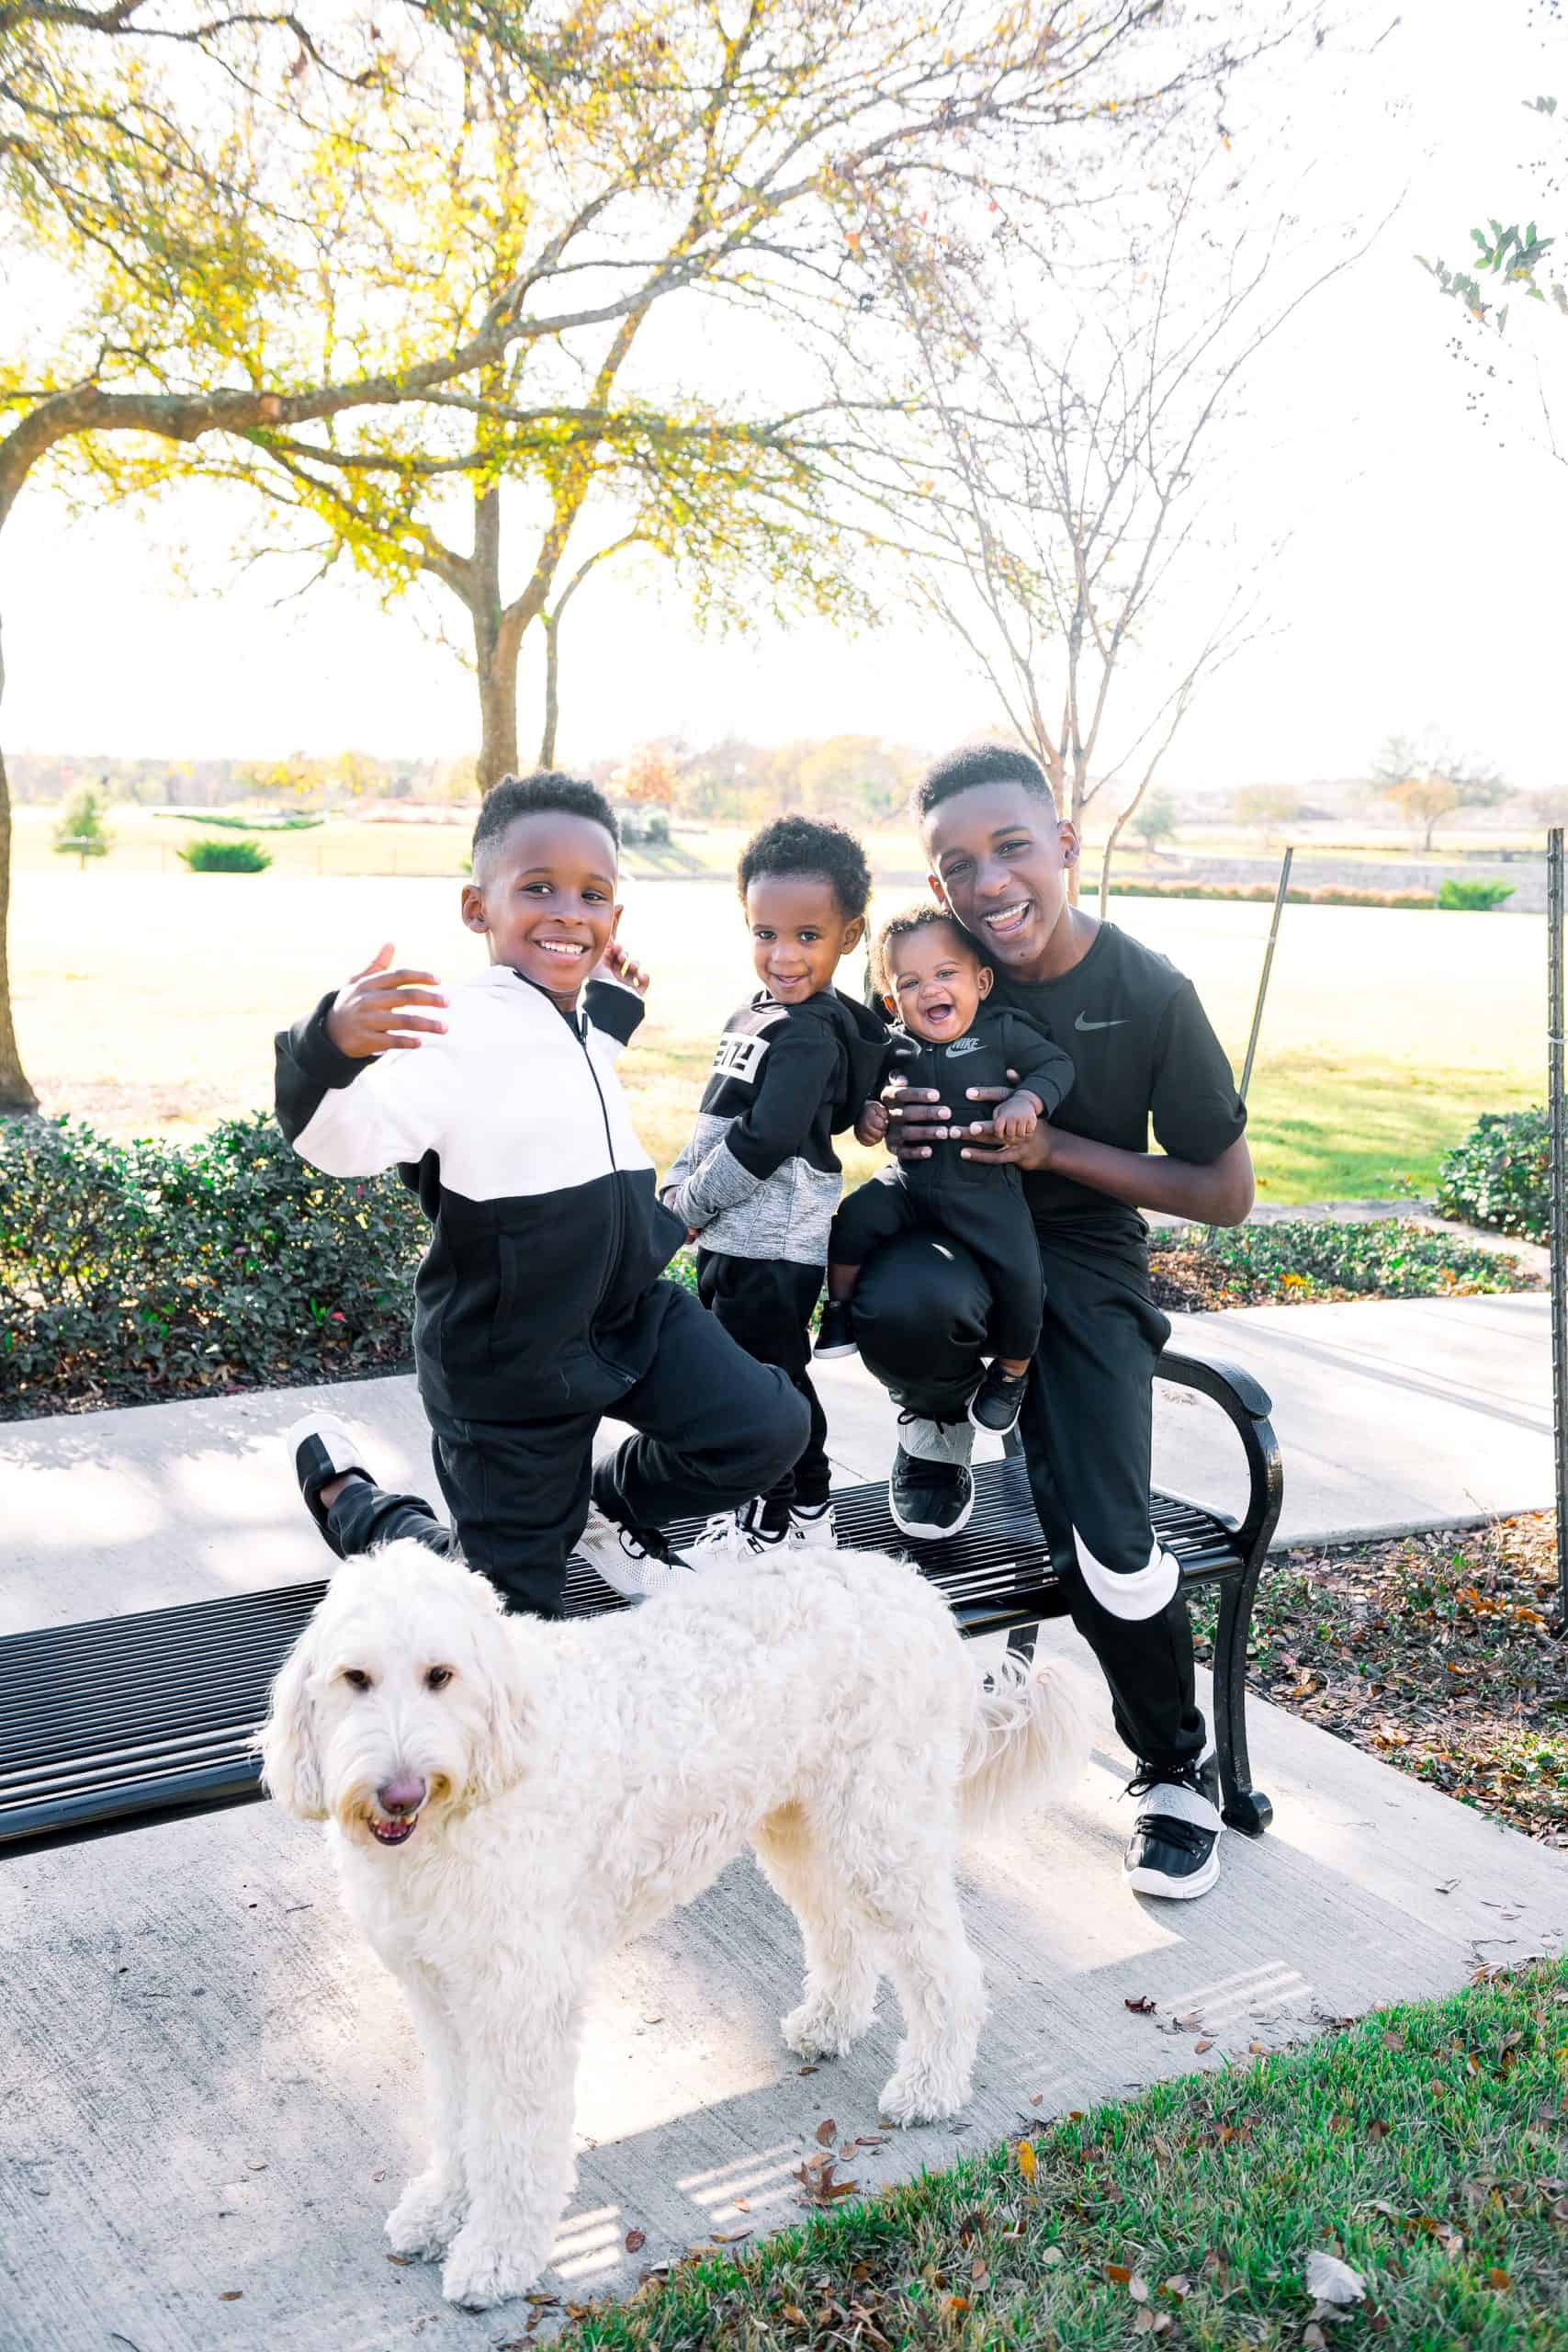 Nike Holiday by popular Dallas fashion blog, Glamorous Versatility: image of four brothers wearing Nike gear and sitting outside on a park bench with their dog.